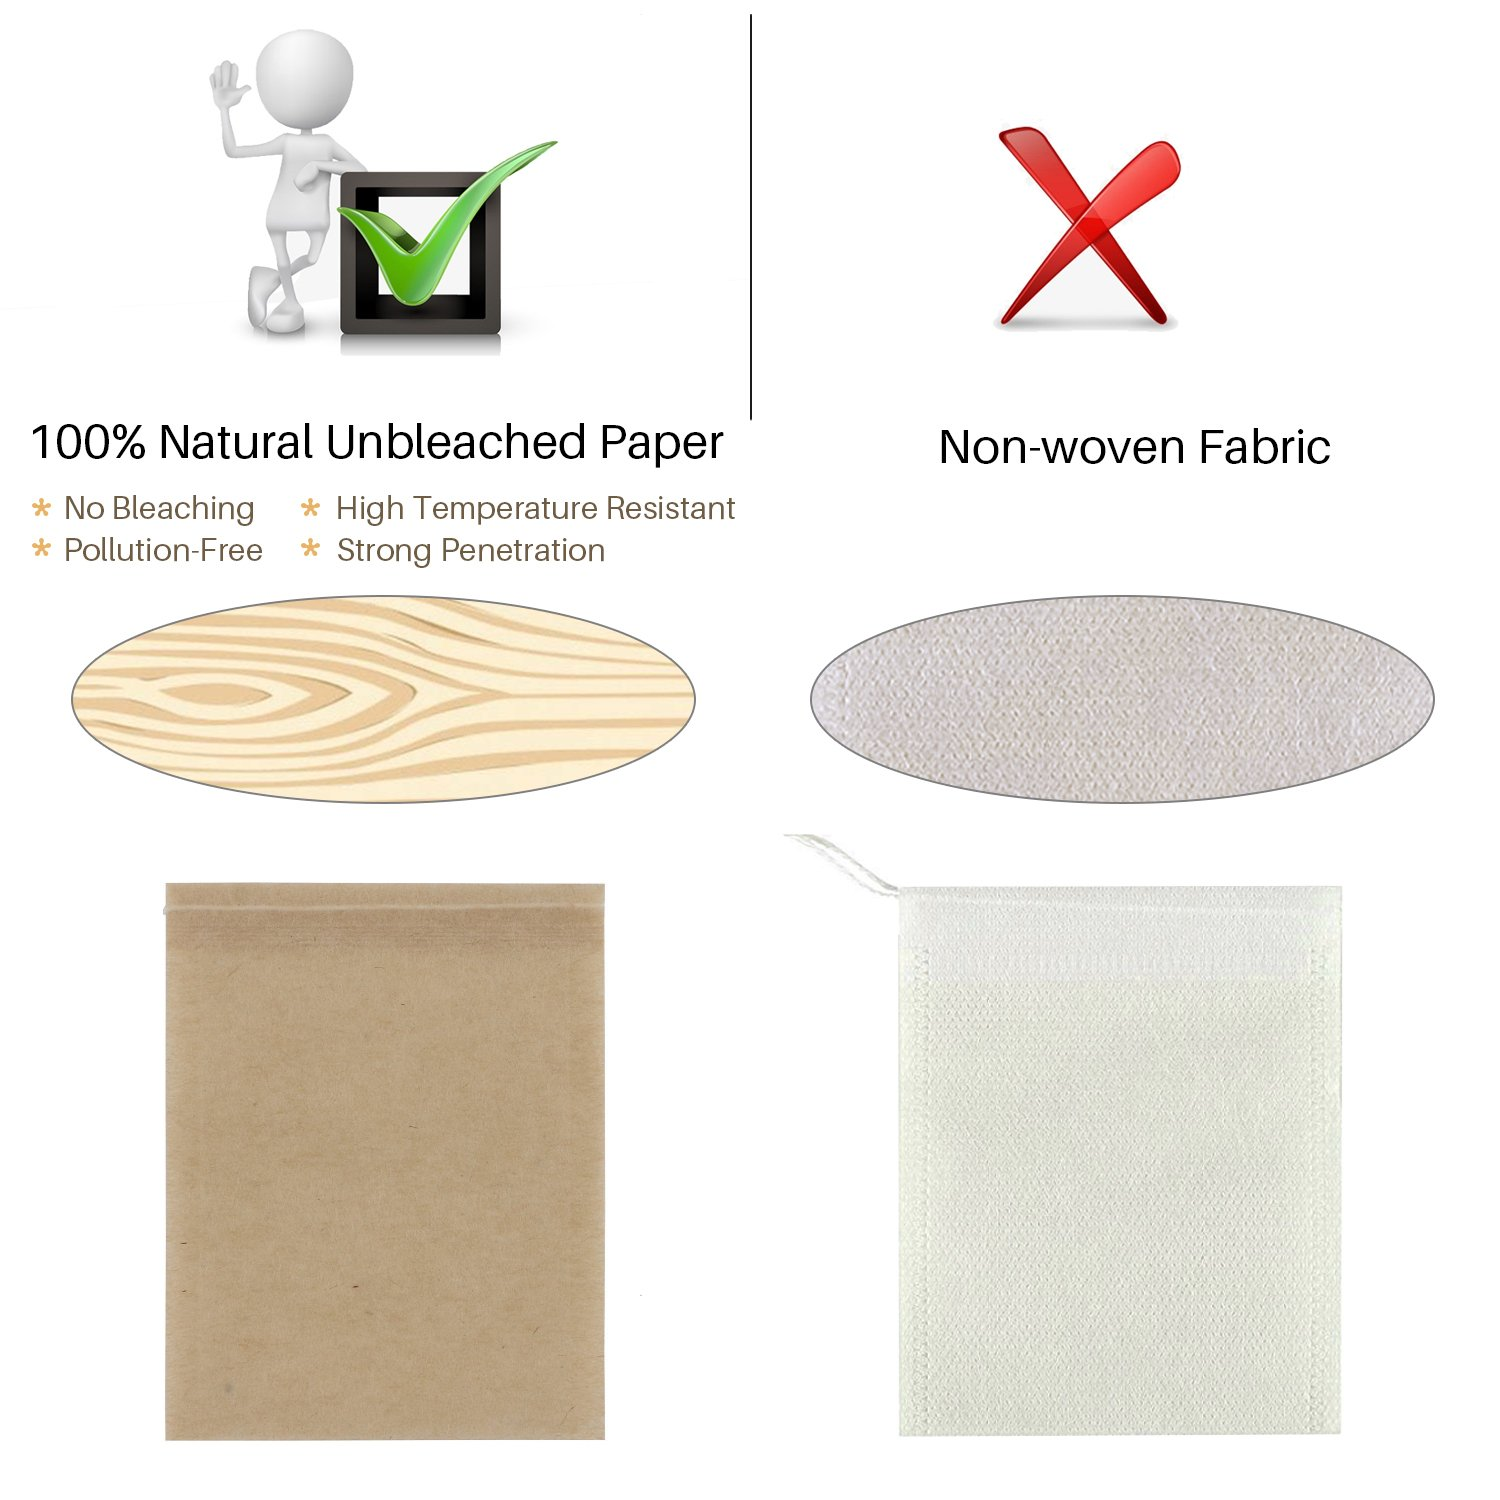 300PCS Tea Filter Bags, Disposable Paper Tea Bag with Drawstring Safe Strong Penetration Unbleached Paper for Loose Leaf Tea and Coffee by BEEHOME (Image #9)